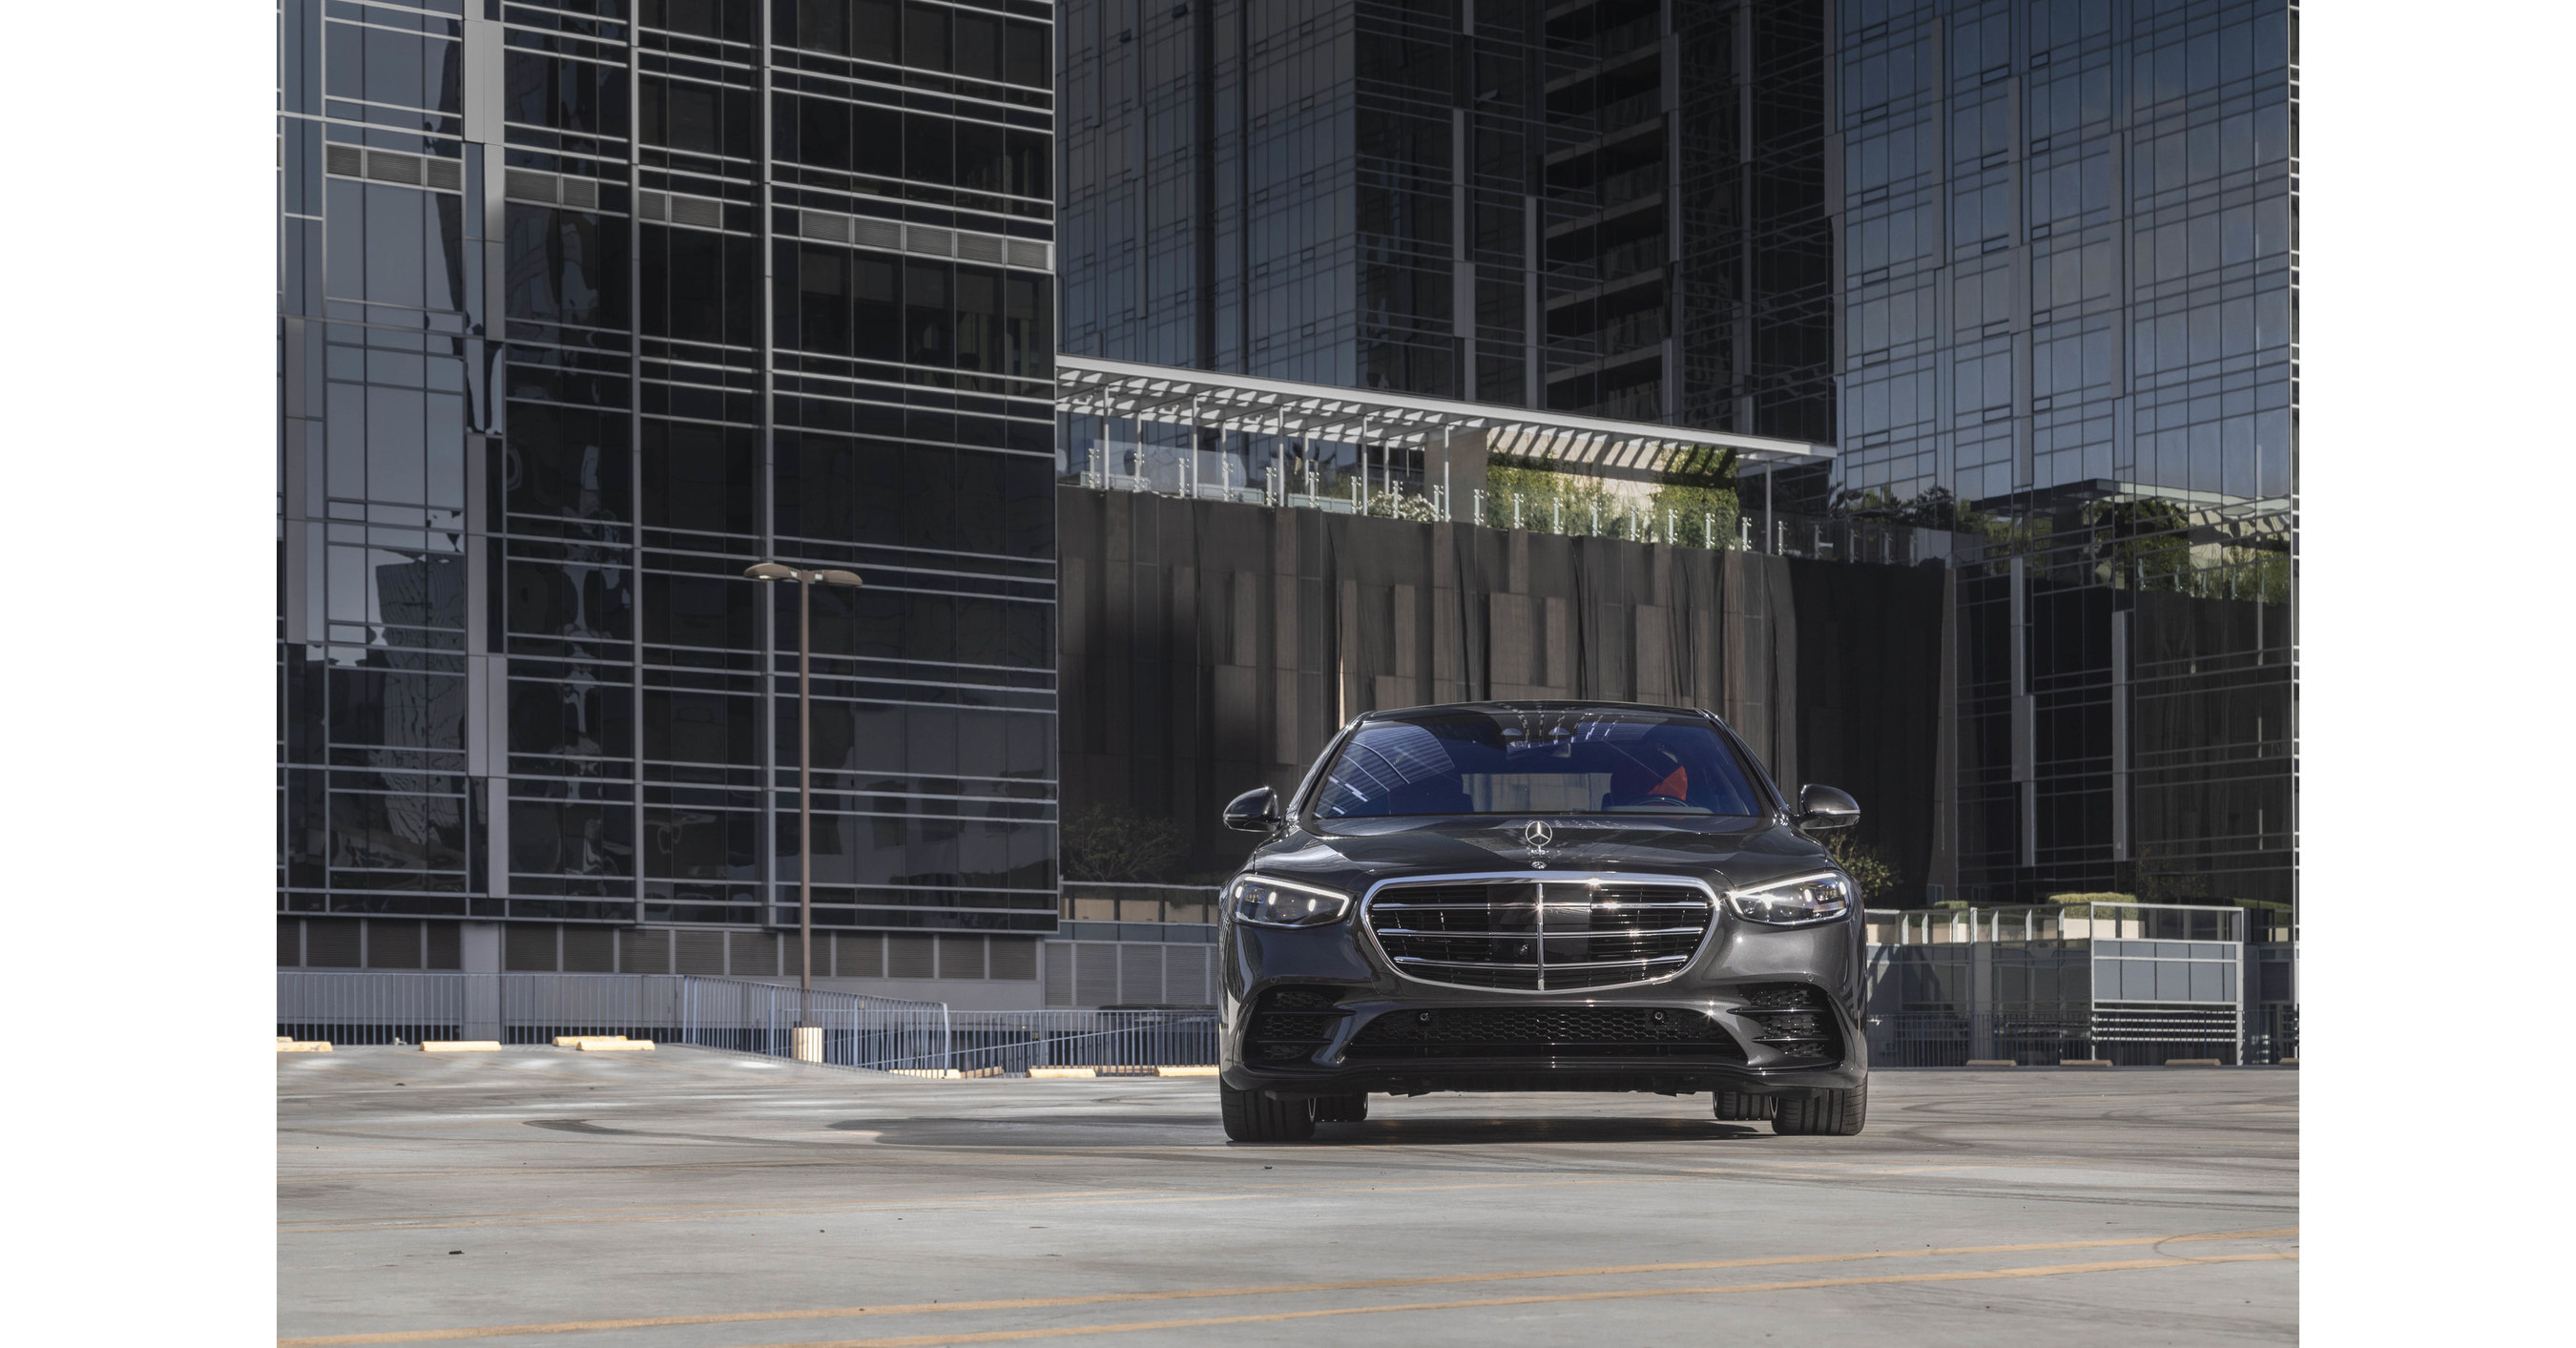 Access here alternative investment news about City Of Long Beach Partners With Mercedes-benz Research & Development North America And Xtelligent To Revolutionize Urban Mobility Through Connected Vehicle Data